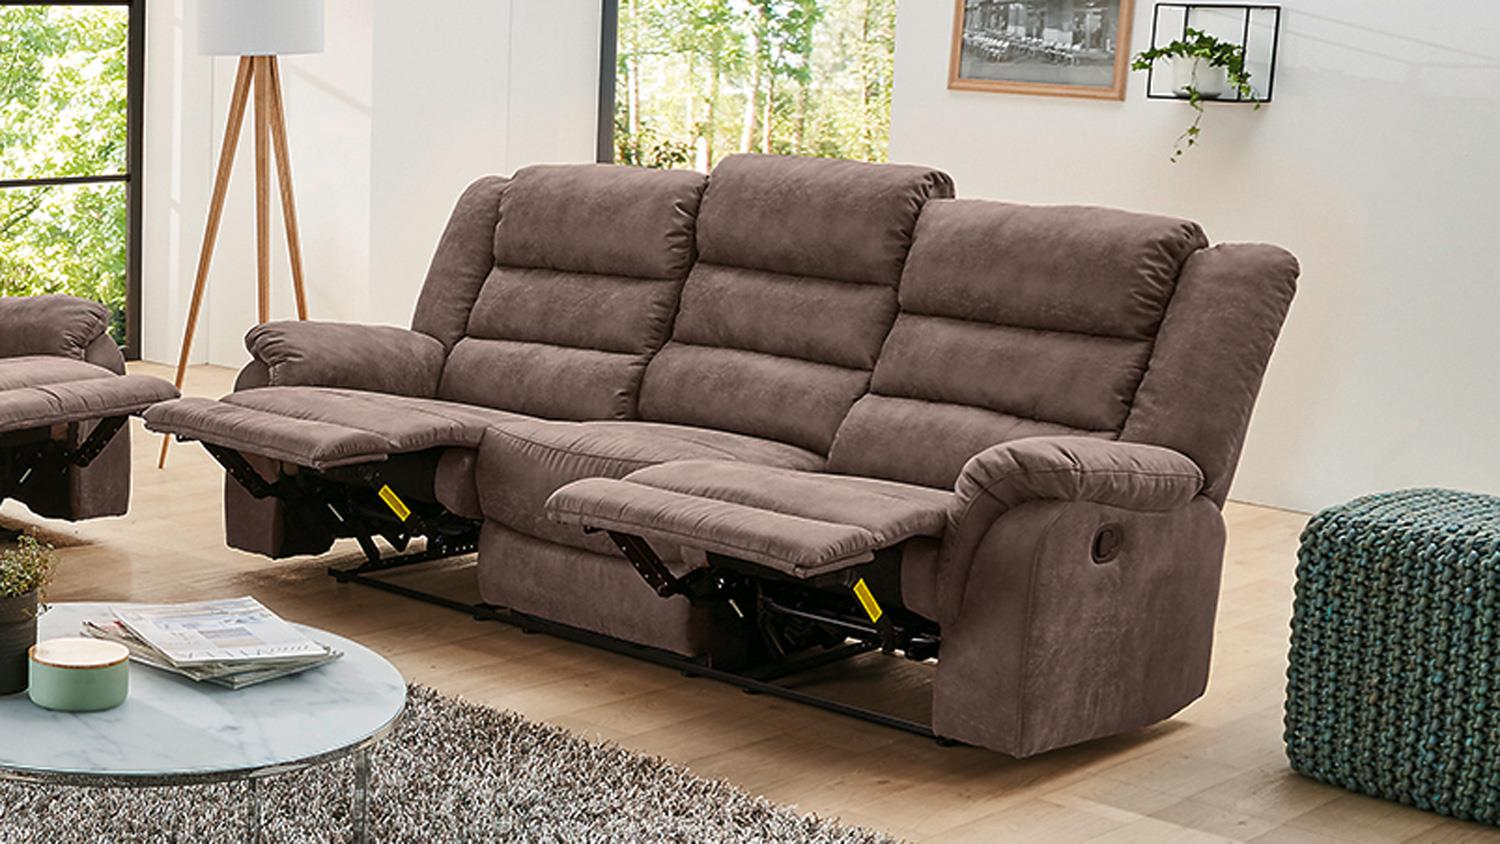 Sofa Cleveland Sessel Relaxsessel 3 Sitzer Mit Funktion In Braun 220